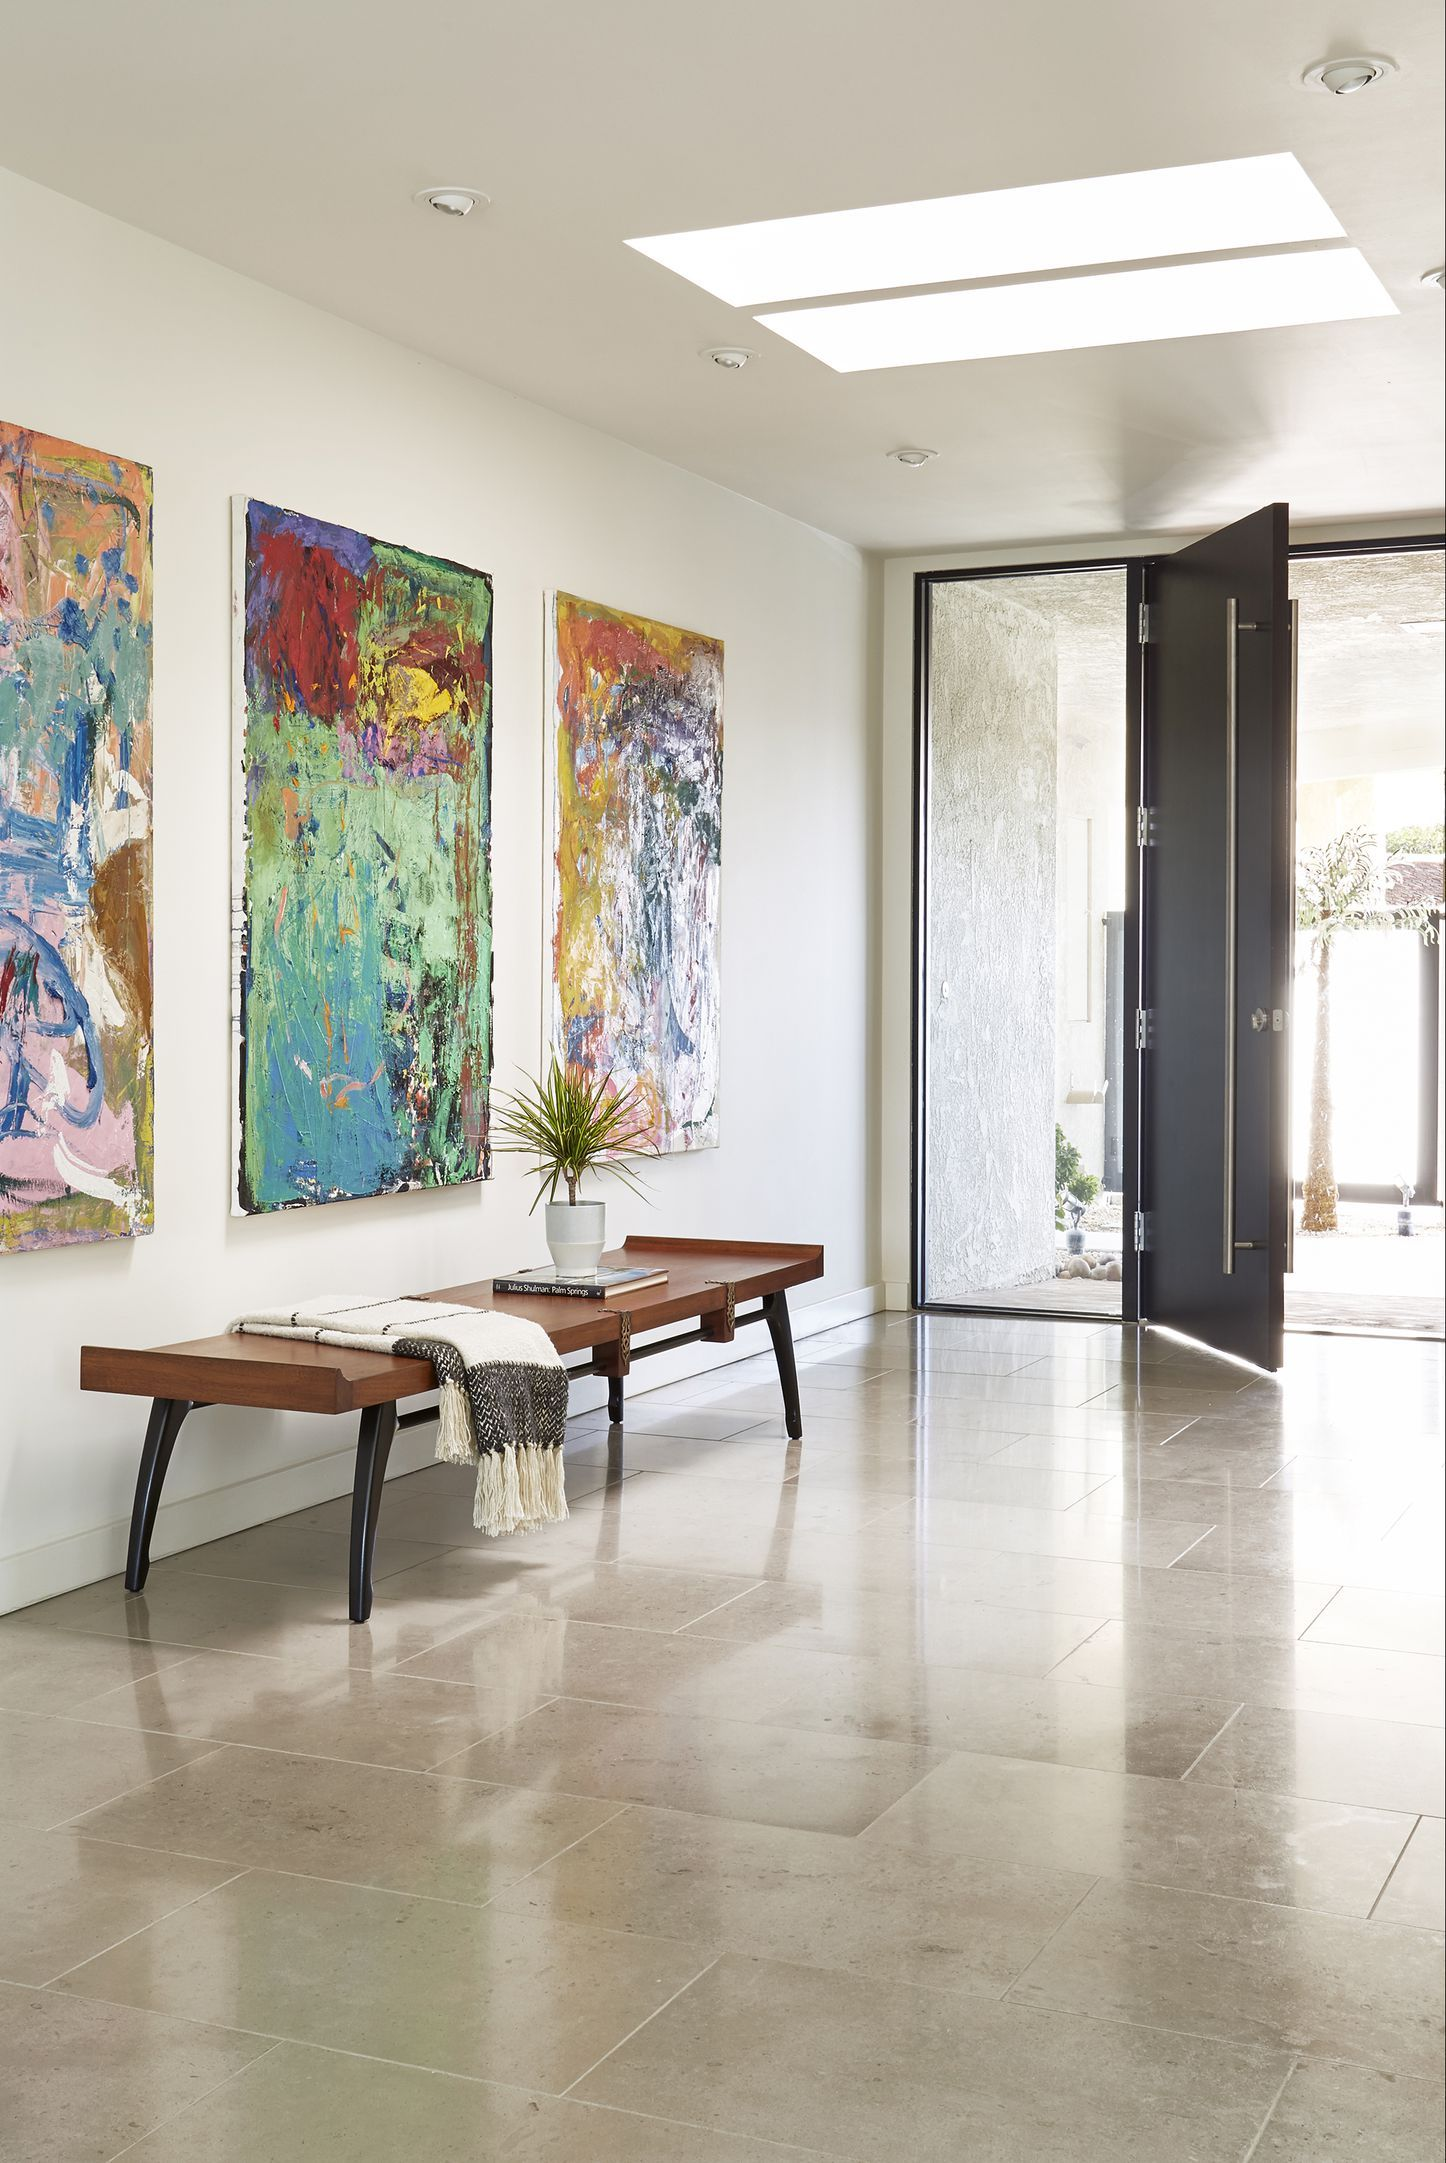 35 Ways to Take Your Foyer to the Next Level with Artwork | Art ...